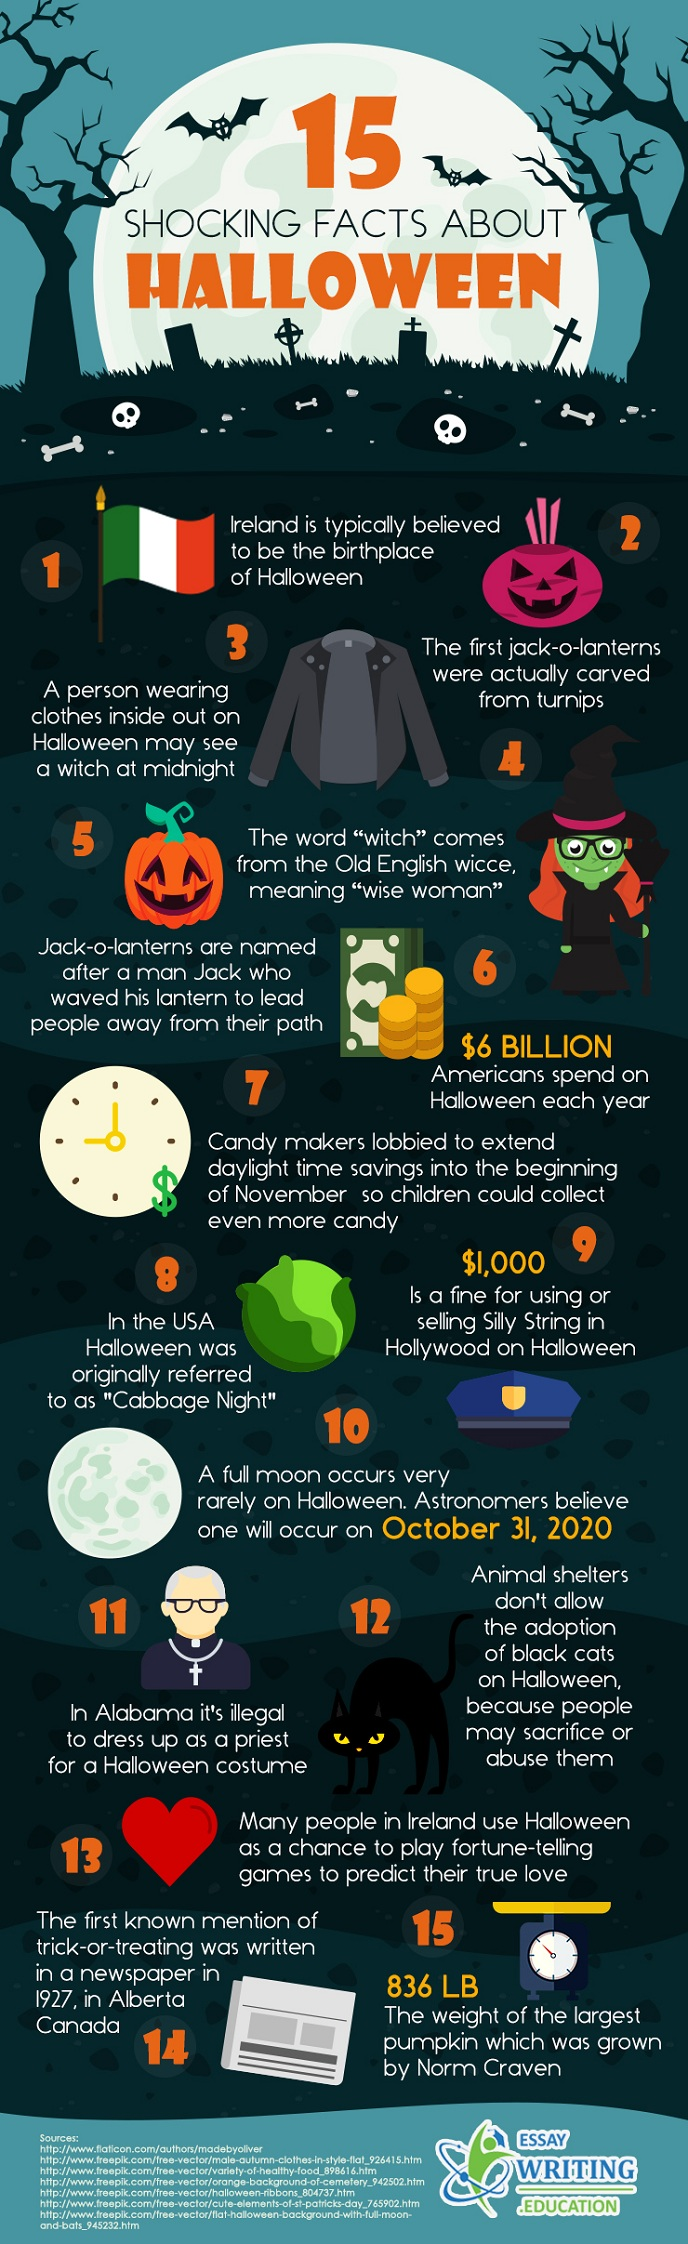 Essay On Importance Of Good Health  Scary Facts About Halloween Research Essay Proposal Template also How To Write A Proposal Essay  Shocking Facts About Halloween  Essaywritingeducation Short Essays For High School Students